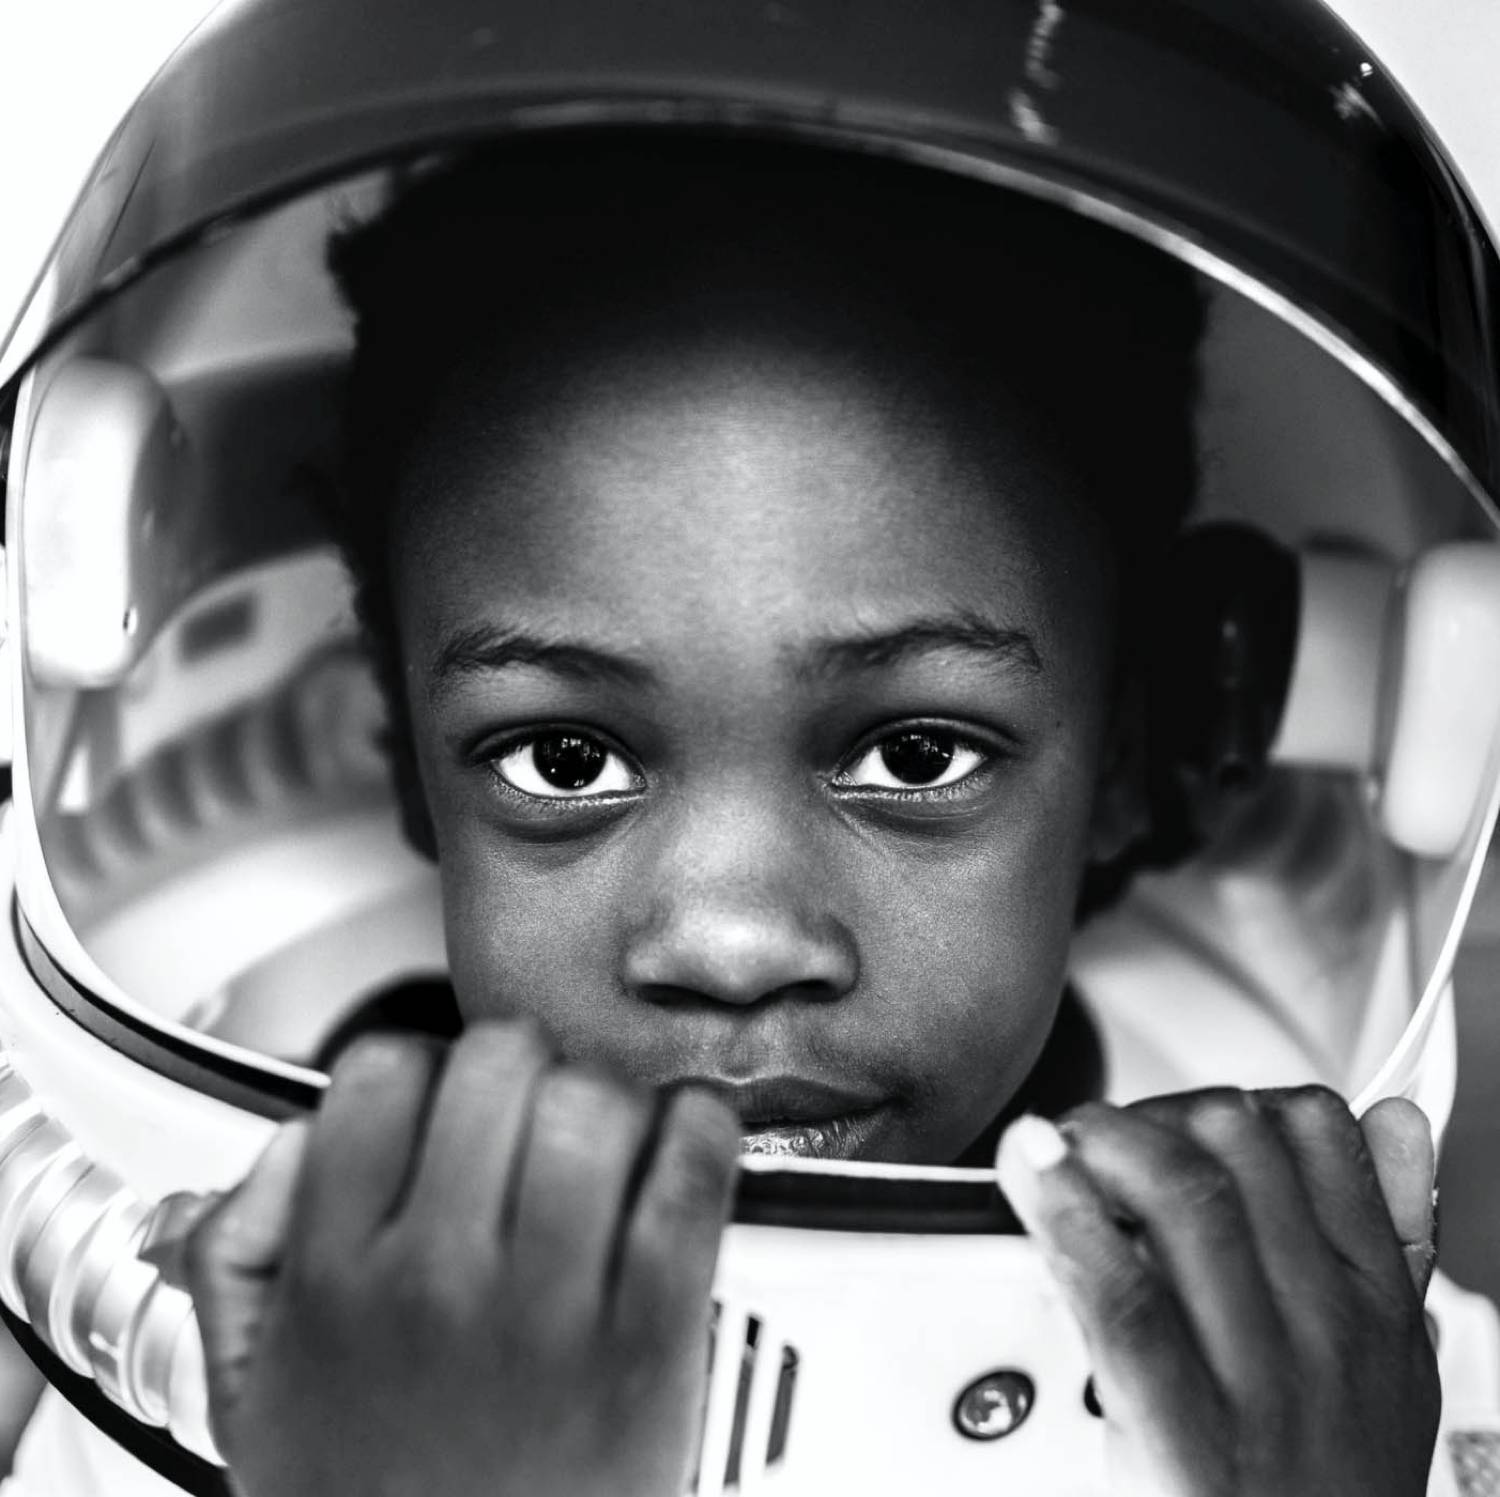 Adina Davis' black and white photo of a young Black child wearing an astronaut helmet.